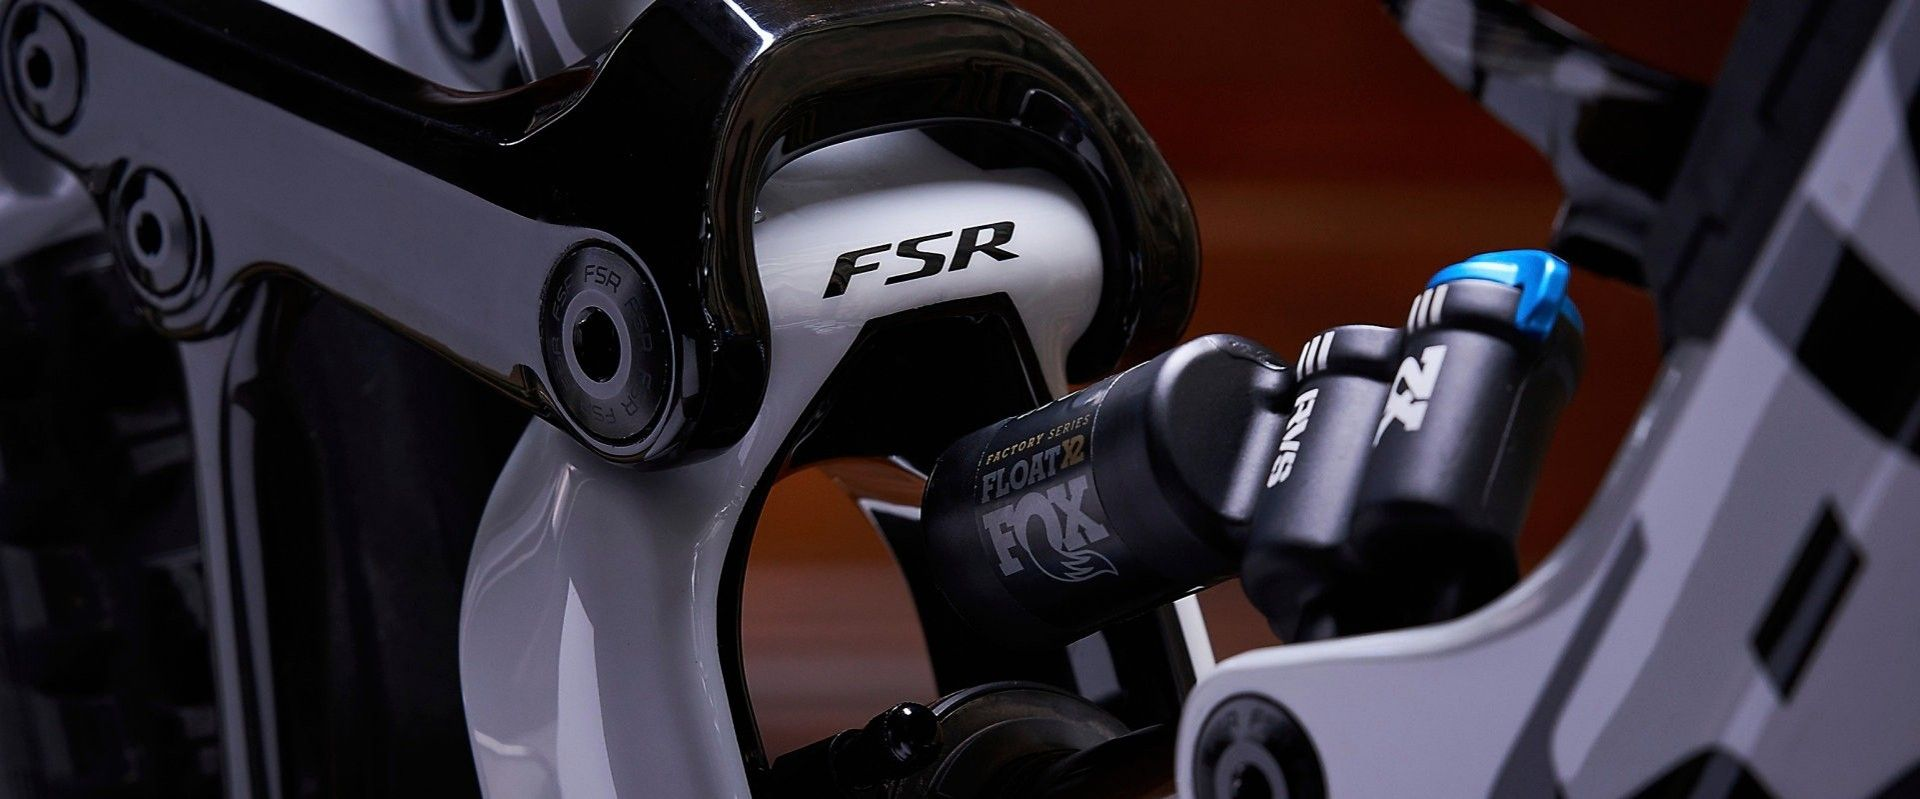 ♥ Buy Bicycle Cuffs ♥ - Bicycle Handlebar - in IBKBike Specialized Concept Store España